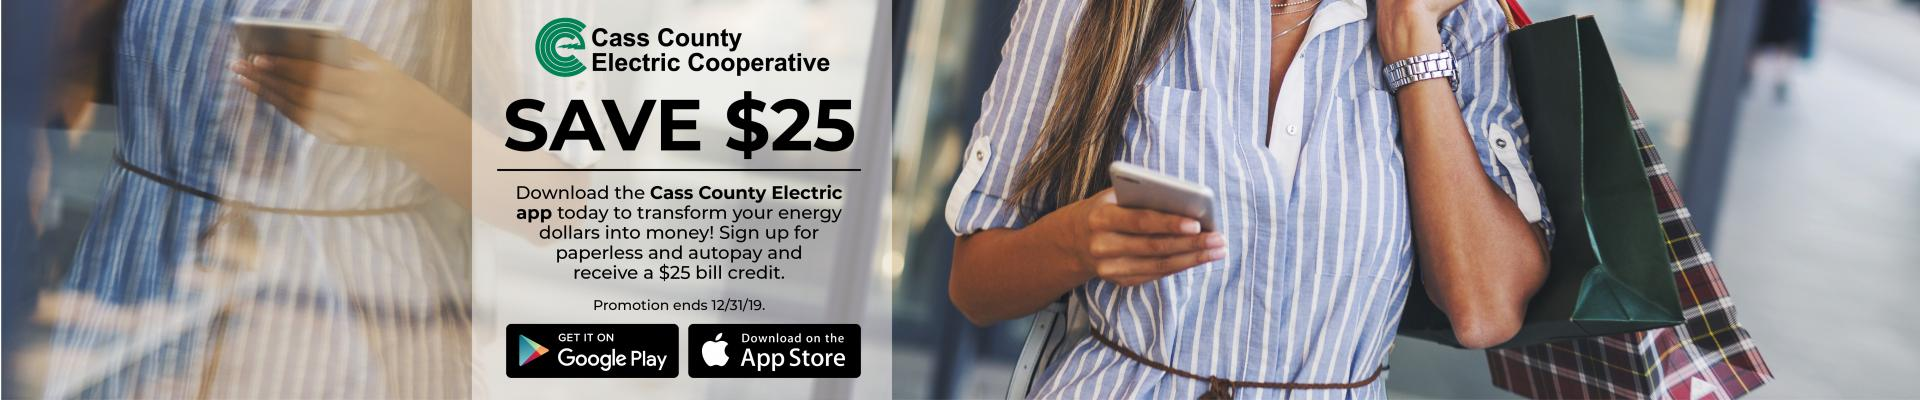 Download new Cass County Electric app to transform your energy dollars into money!